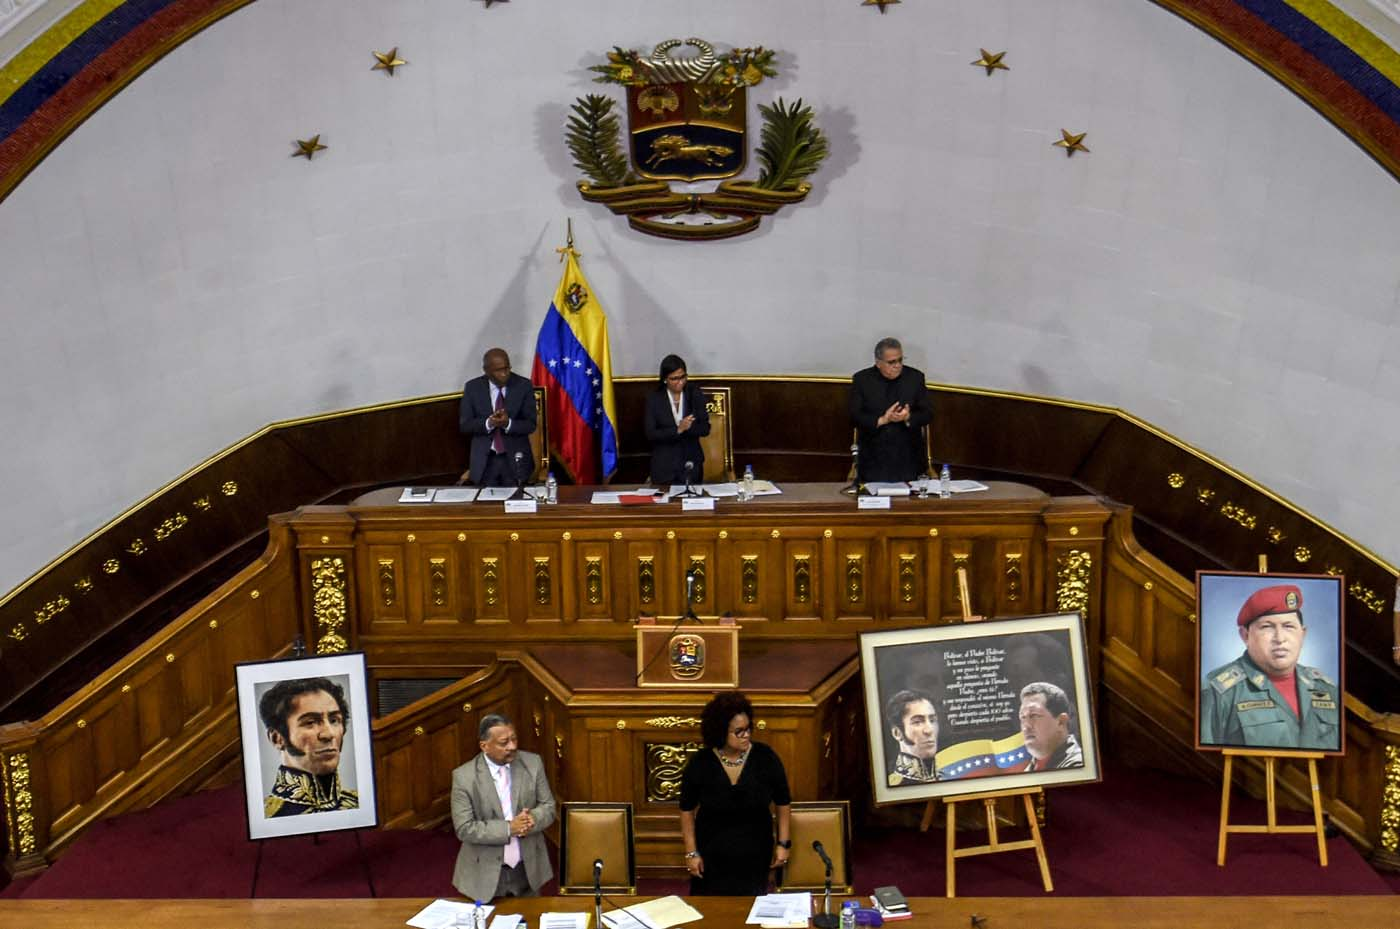 """The president of Venezuela's Constituent Assembly Delcy Rodriguez (back row-C) is pictured during a session in Caracas on August 8 , 2017.  The United Nations on Tuesday slammed Venezuela's use of """"excessive force"""" against protesters, amid worsening tensions and fresh moves against the opposition. / AFP PHOTO / JUAN BARRETO"""